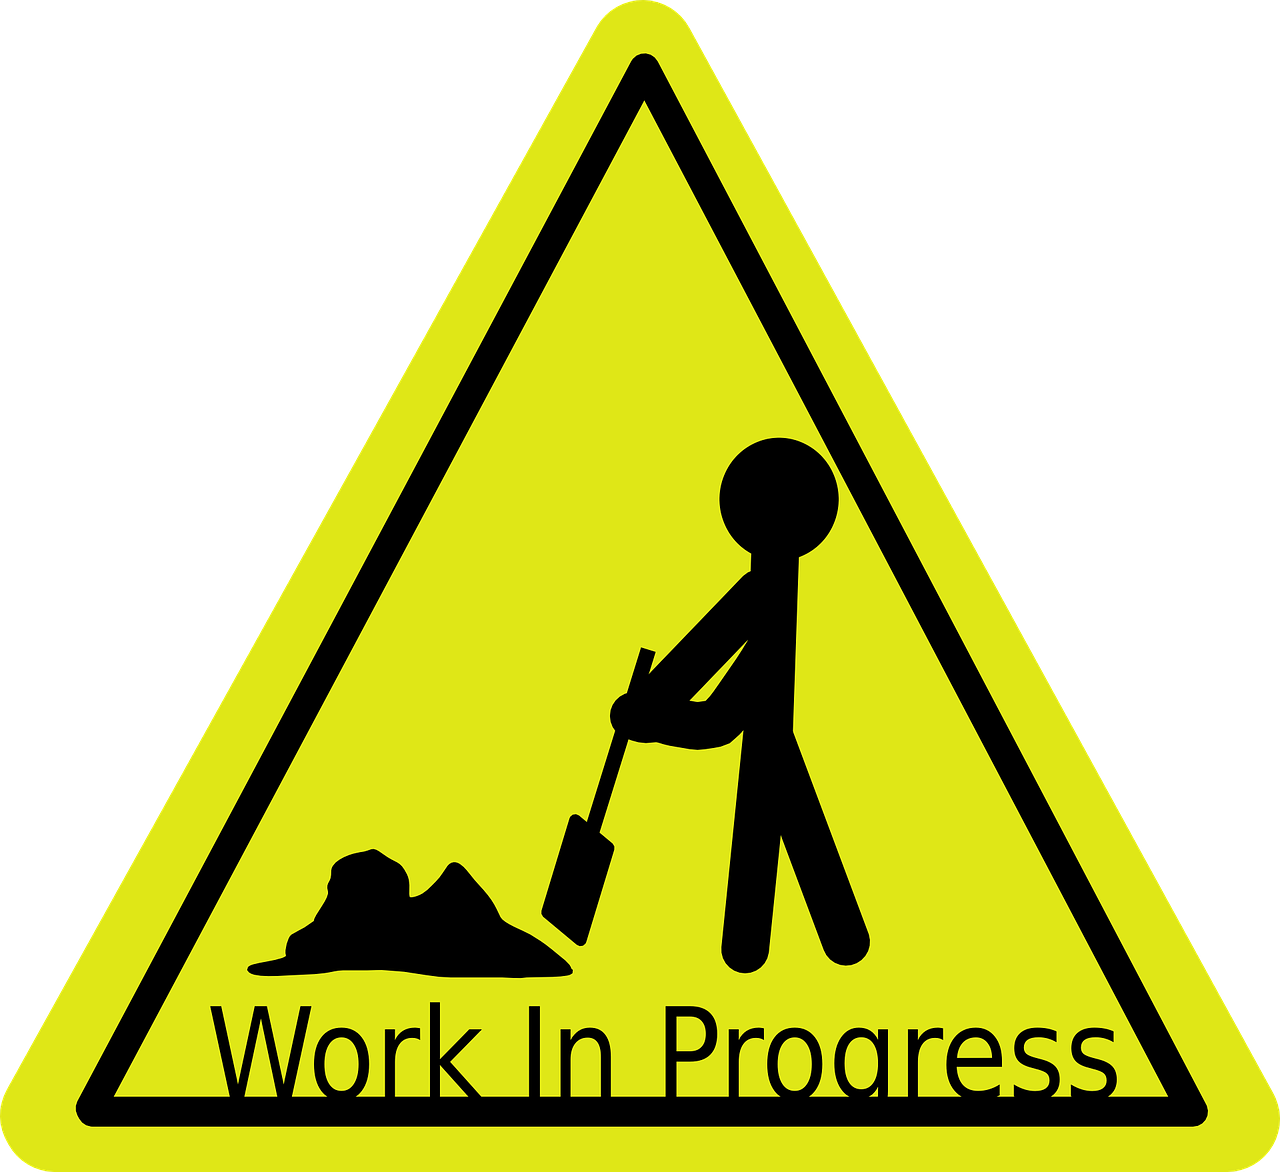 work-in-progress,sign,activity,workers,road,shovel,worker,construction,safety,beware,caution,warning,symbol,traffic sign,free vector graphics,free pictures, free photos, free images, royalty free, free illustrations, public domain